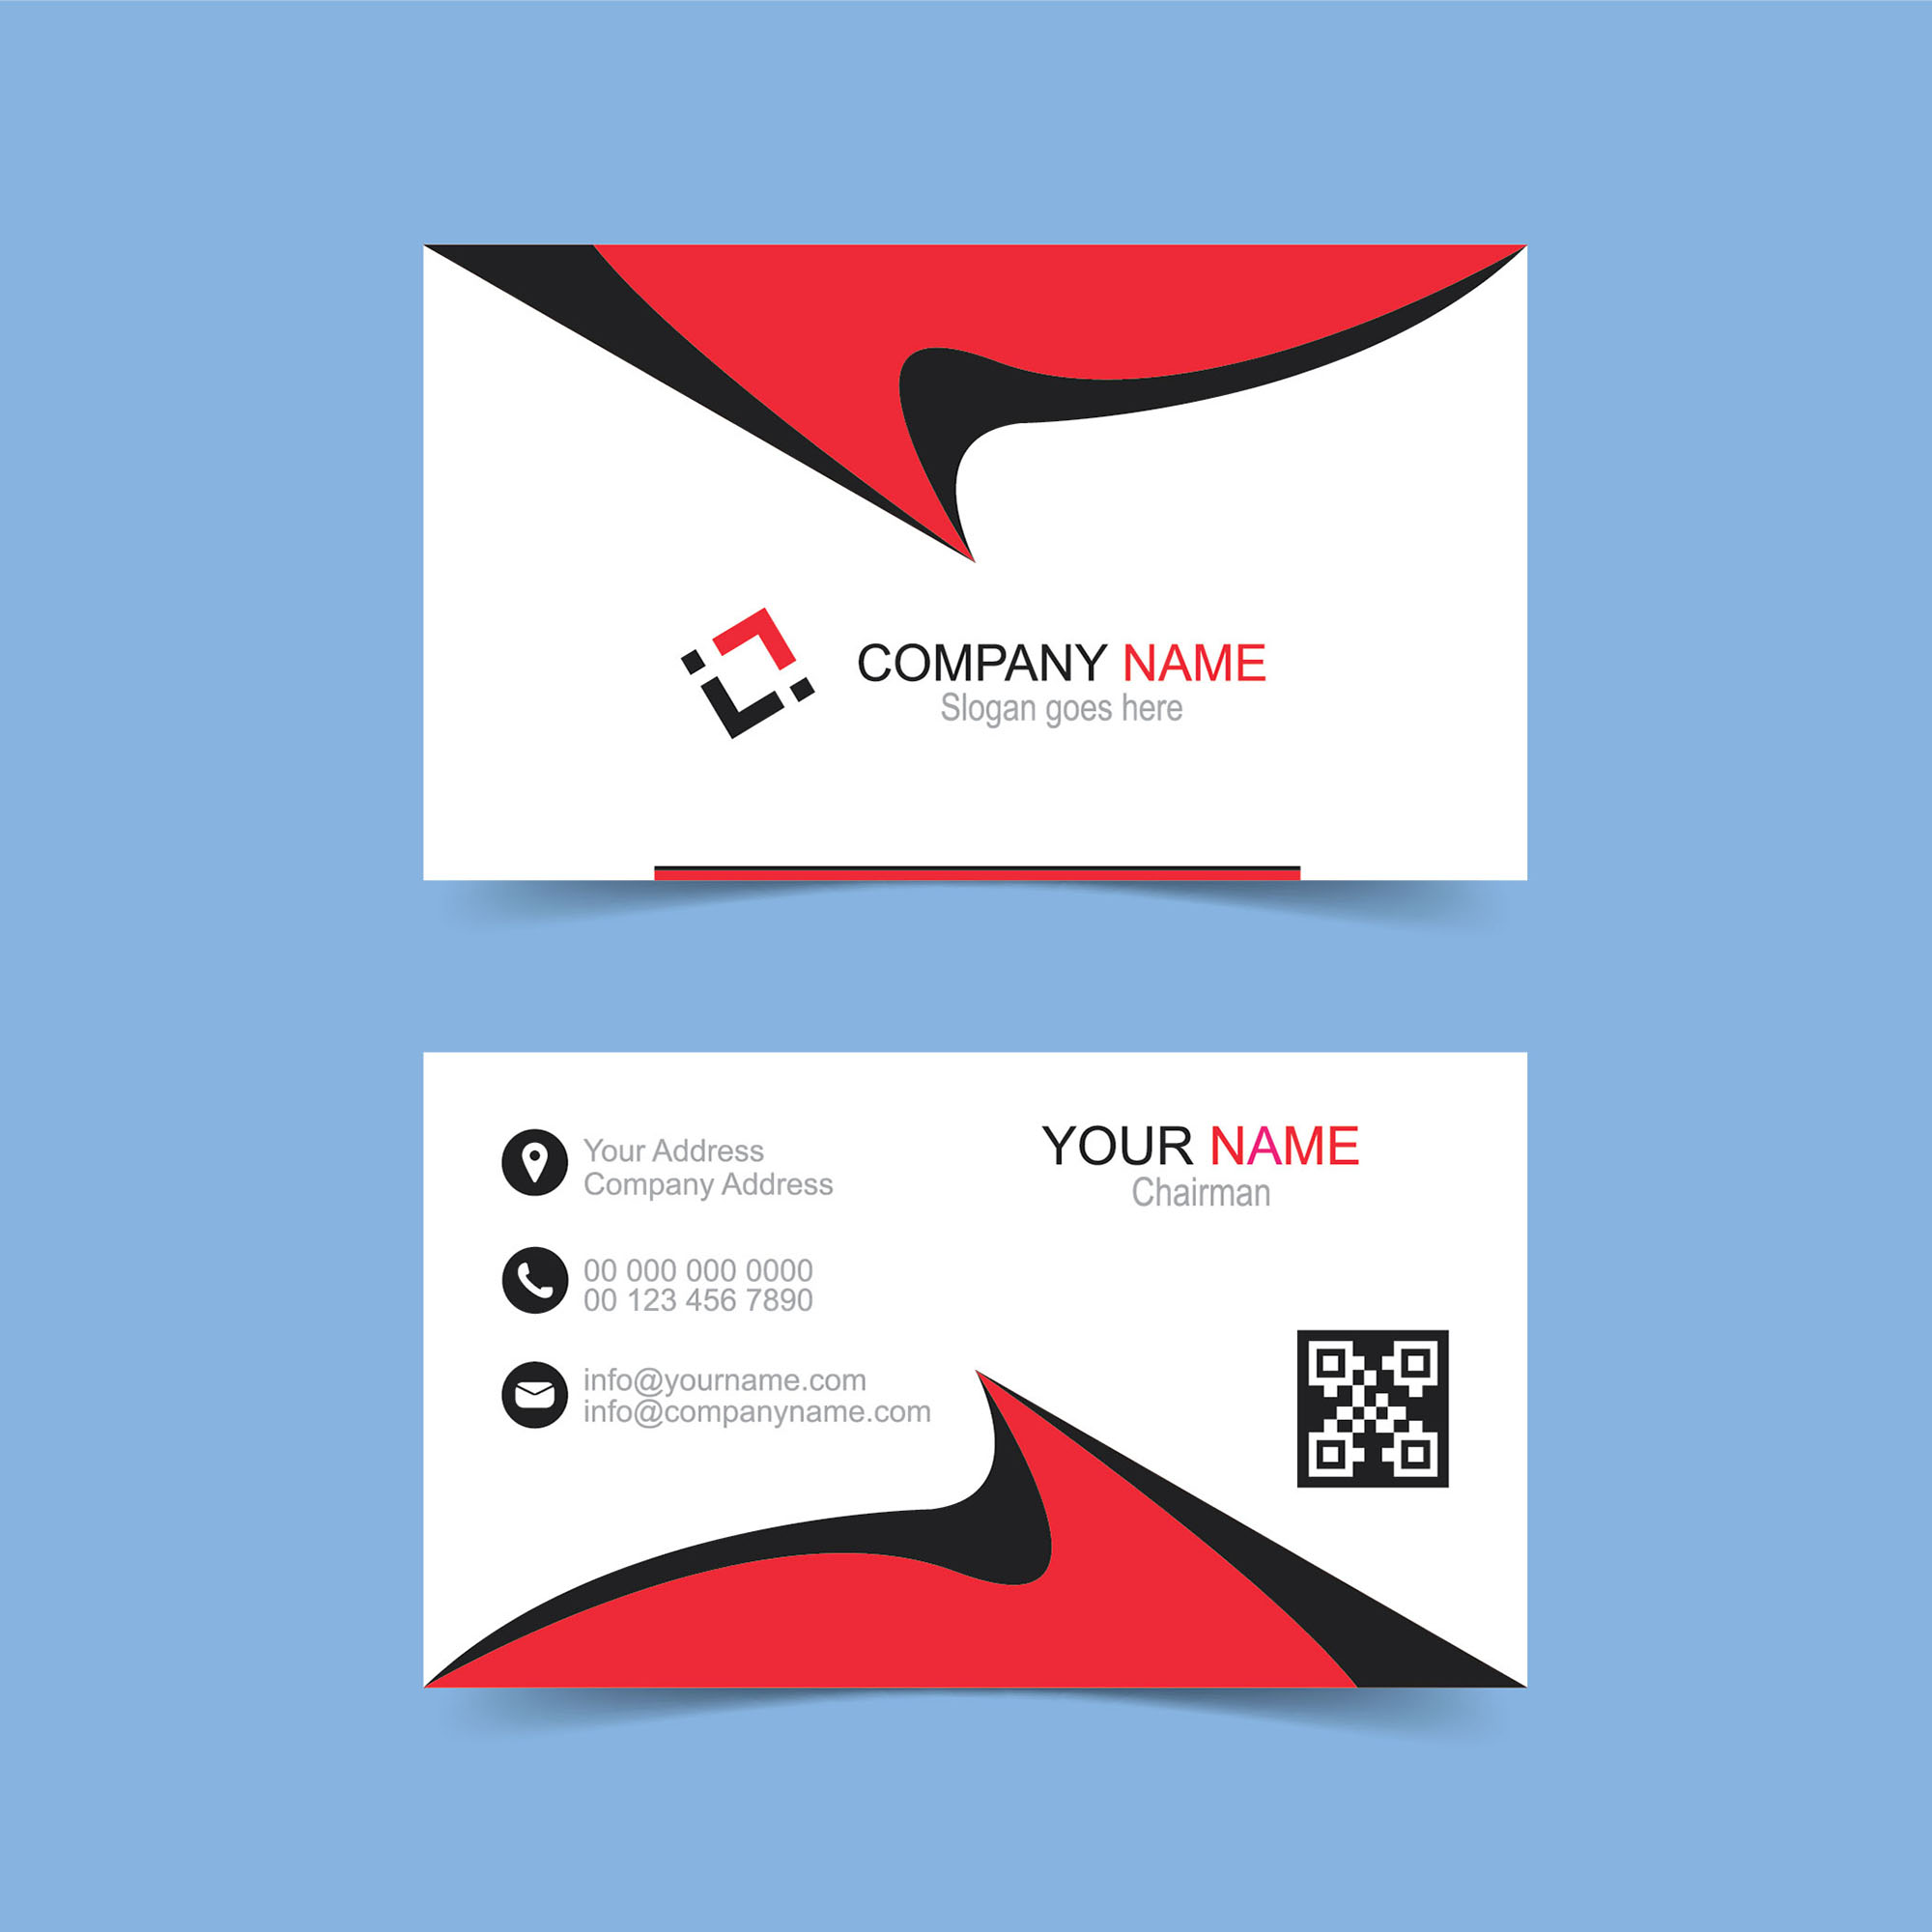 Double sided business card free download wisxi business card business cards business card design business card template design templates flashek